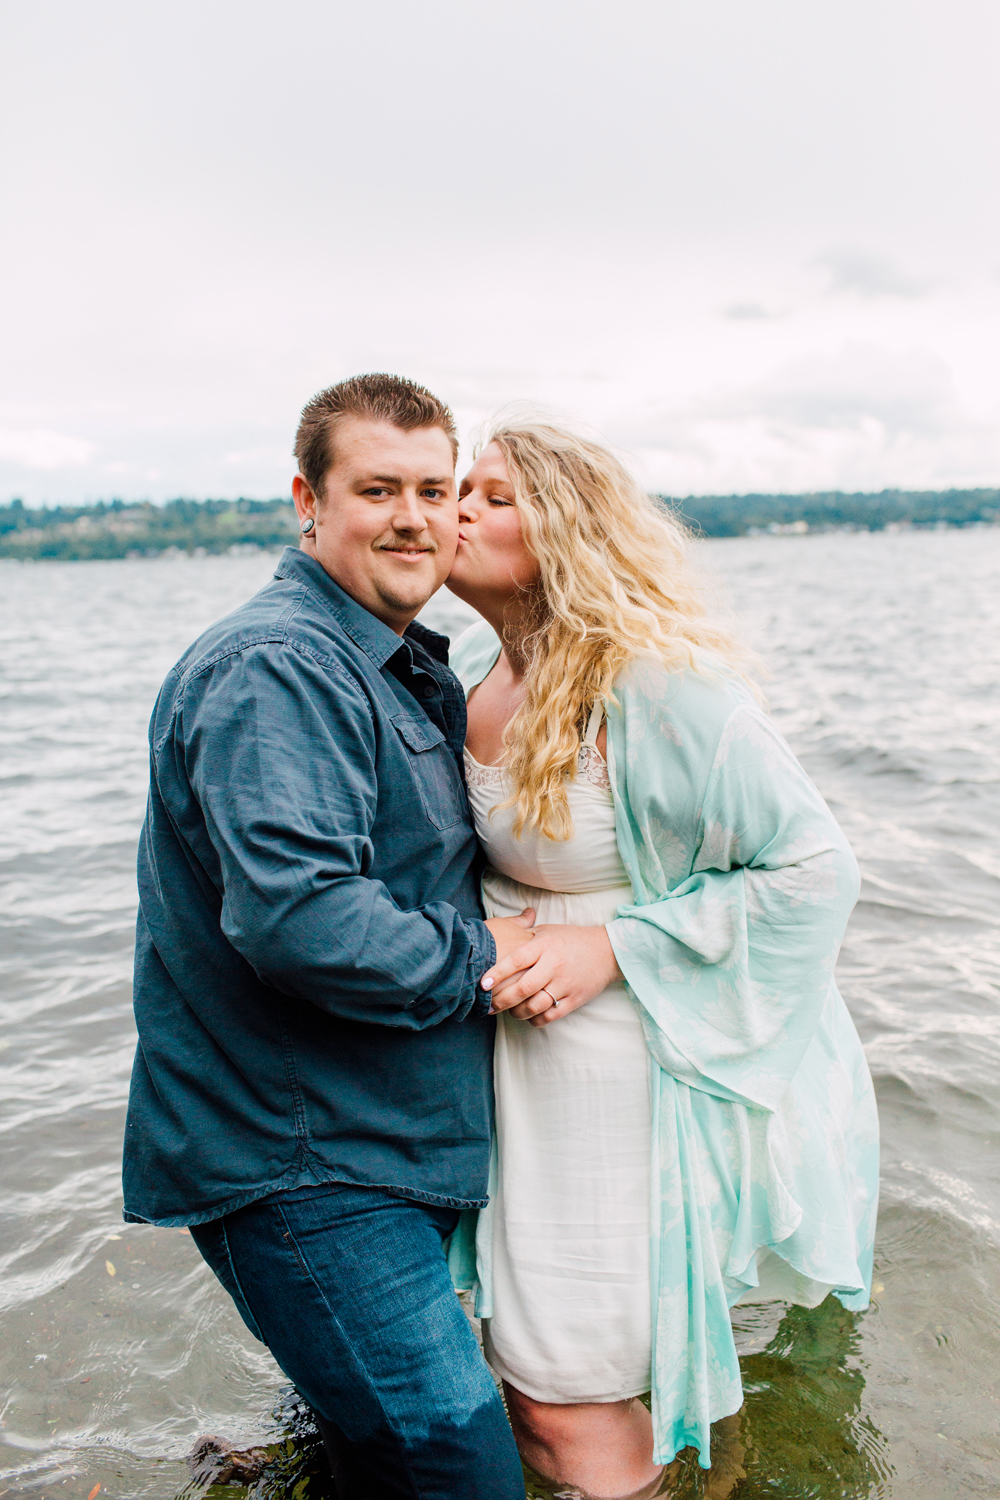 025-seattle-engagement-photographer-katheryn-moran-lake-washington-ashley-zach.jpg